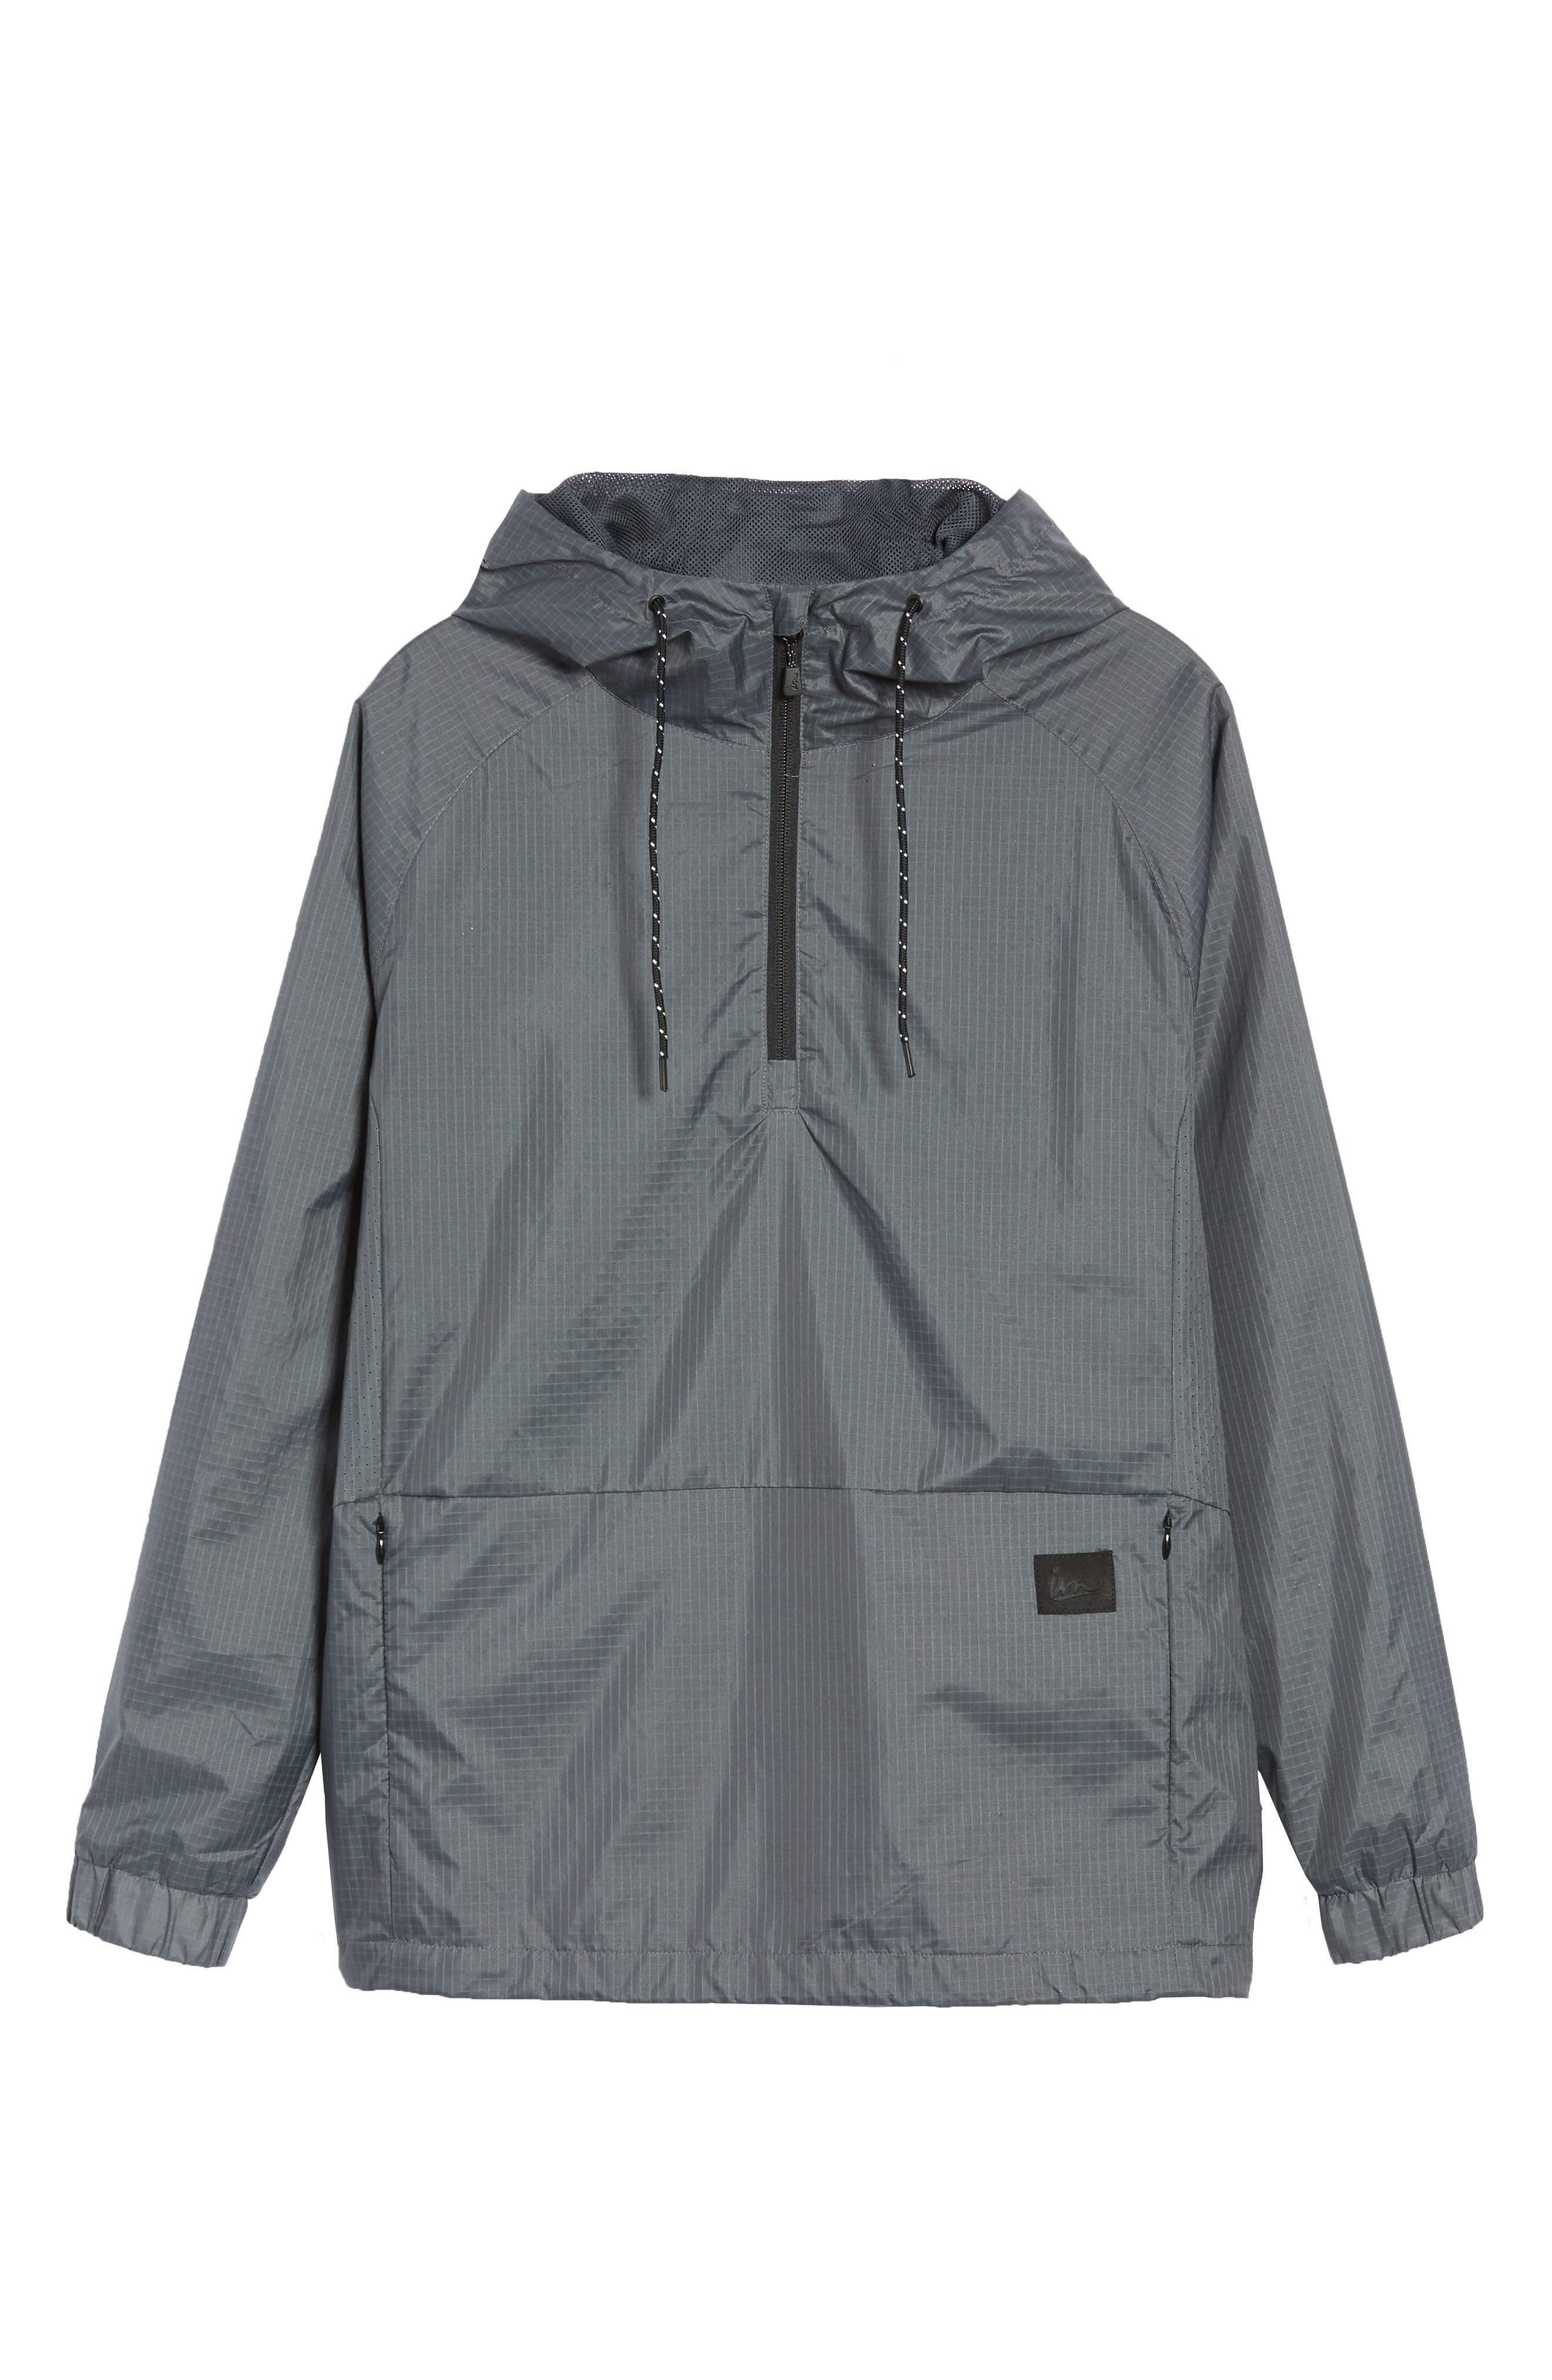 NCT Bezel Packable Anorak,                             Alternate thumbnail 5, color,                             020